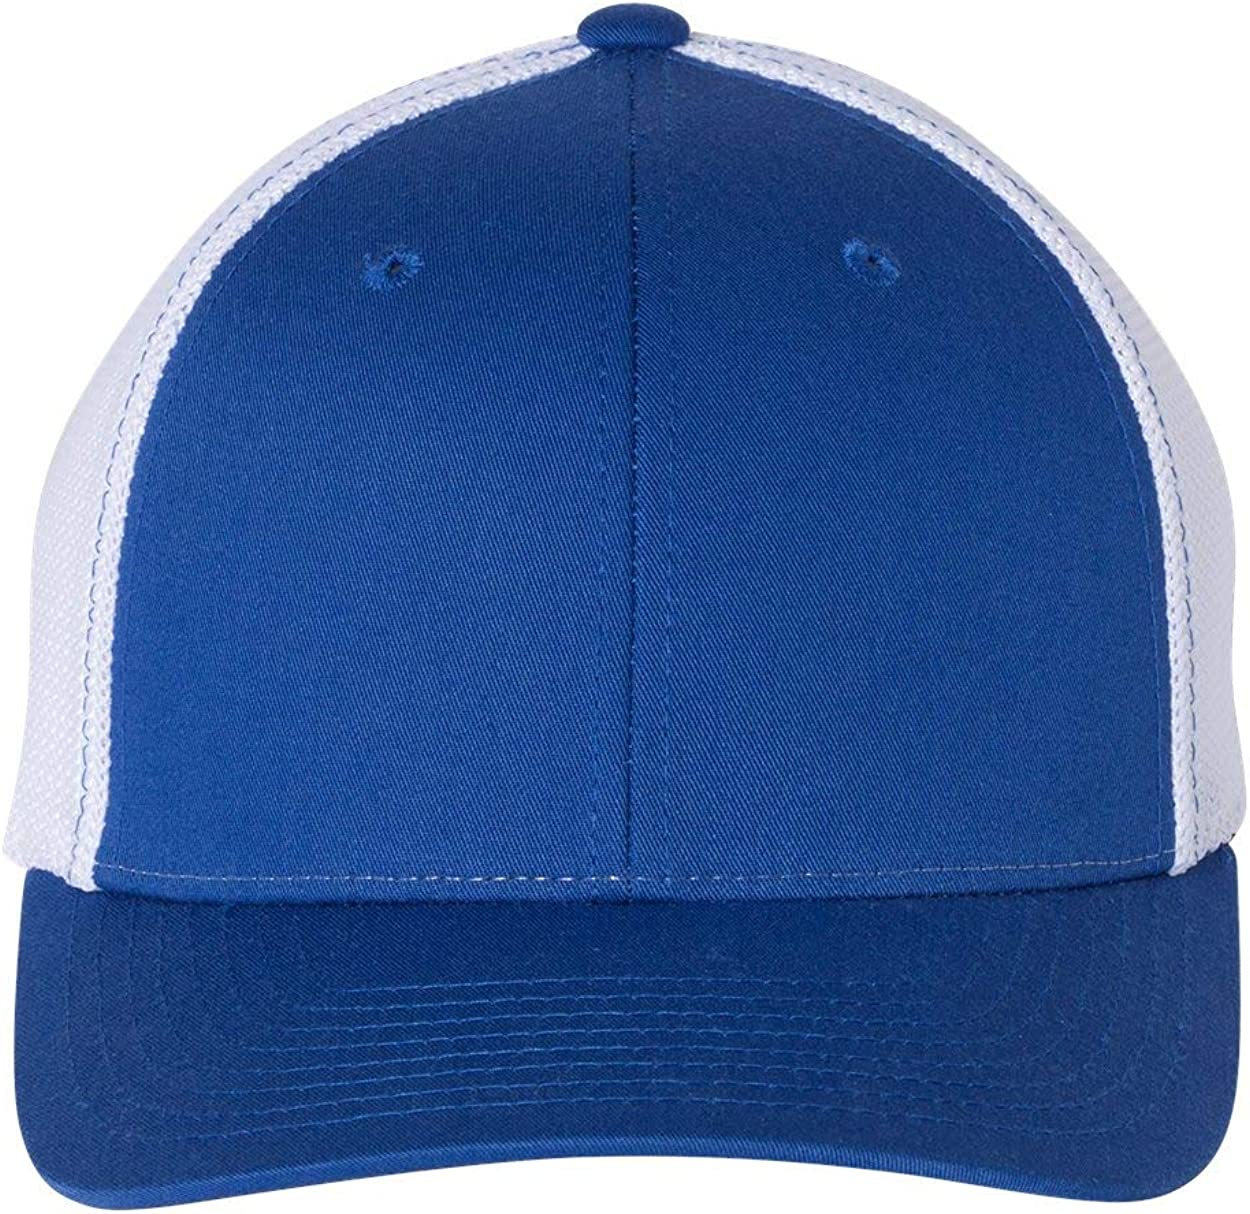 RICHARDSON Mens Max 89% OFF Fitted Trucker with R-Flex security 110